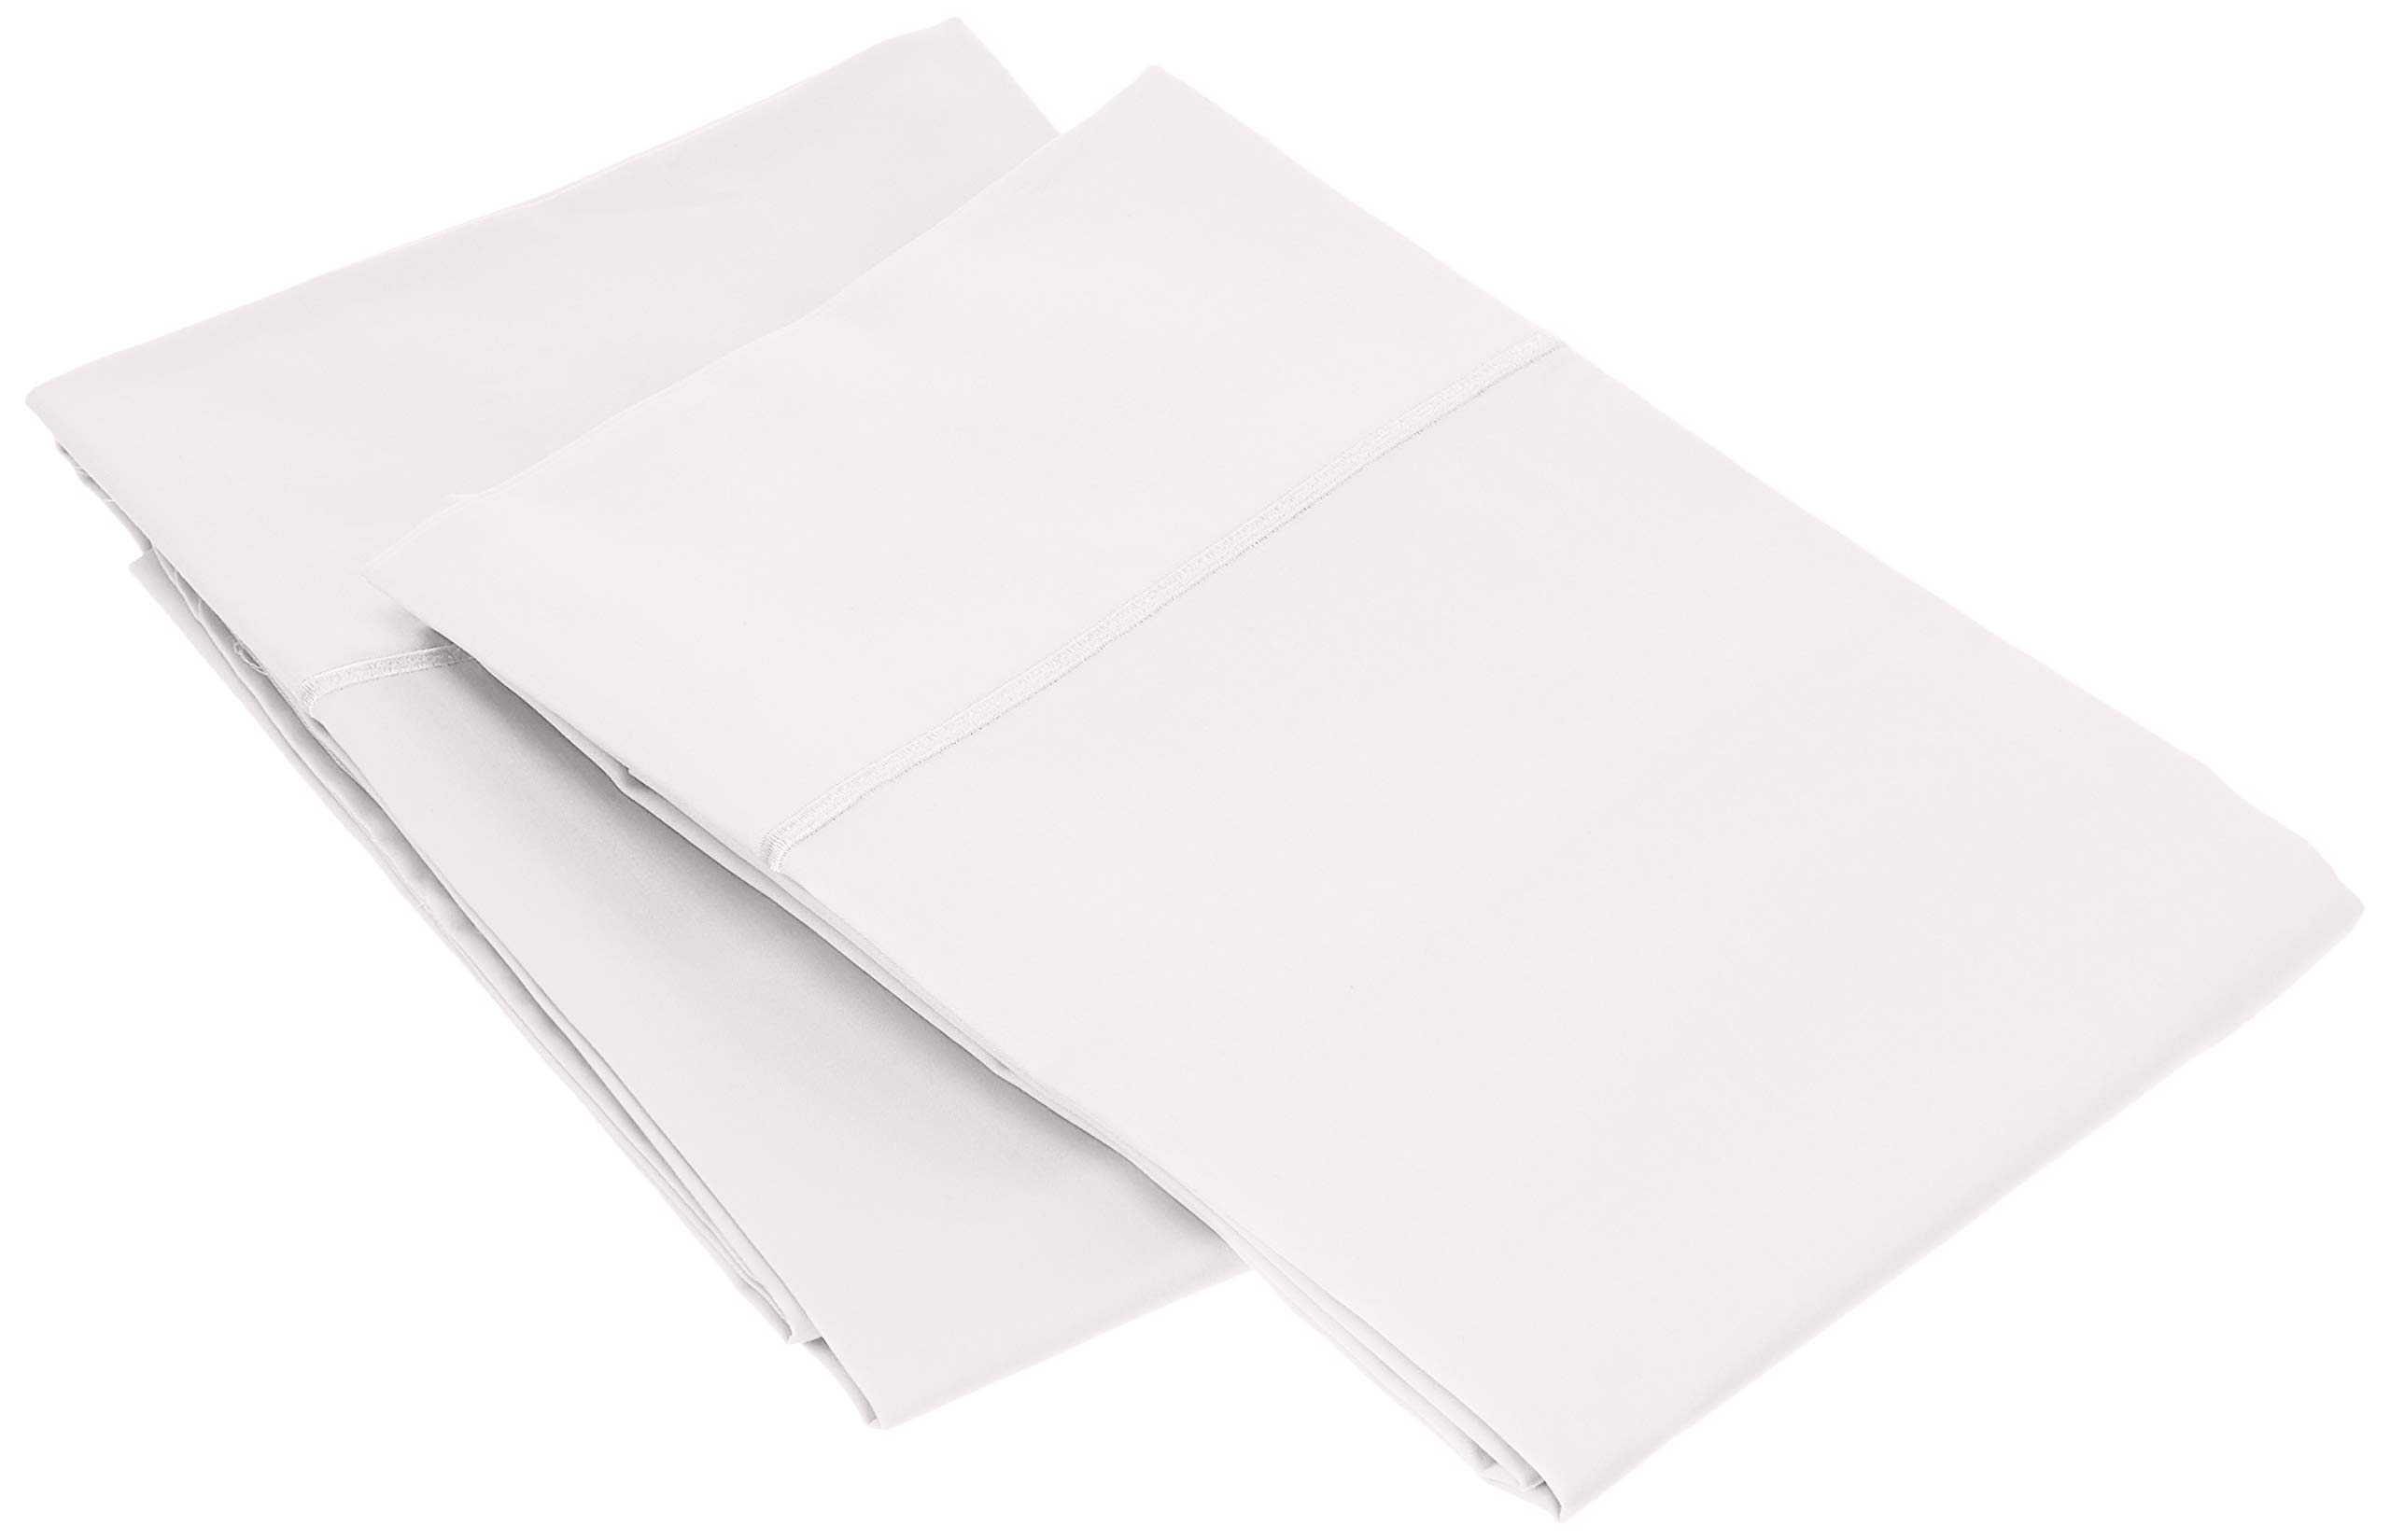 Charisma 310 Thread Count Classic Solid Cotton Sateen King Pillowcase Pair Bright White by Charisma